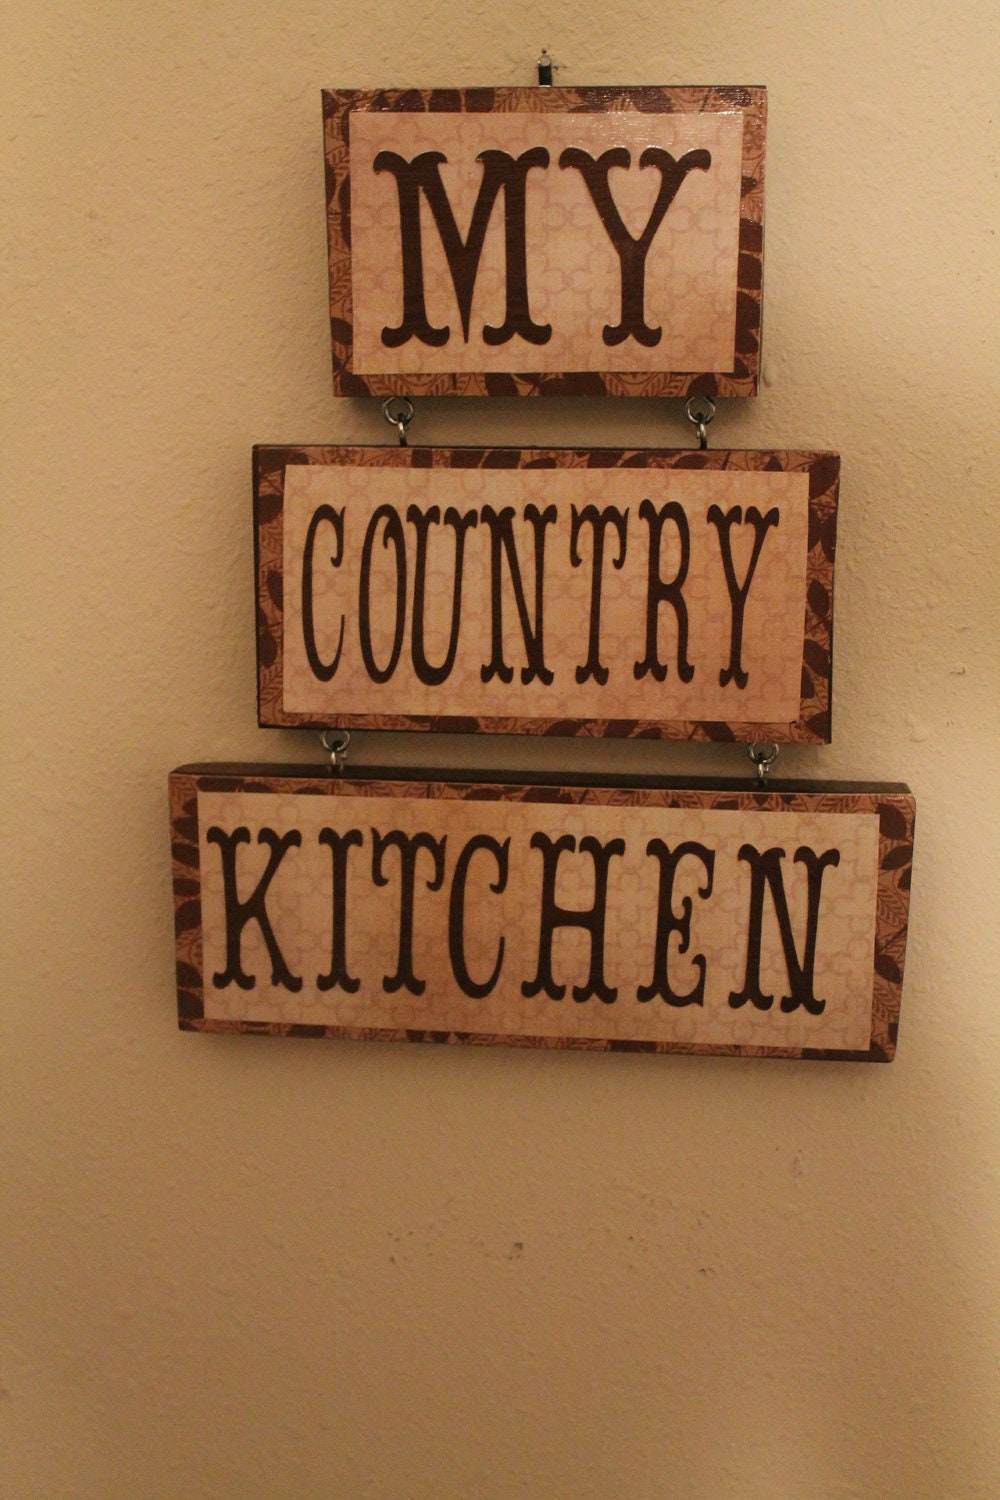 Popular items for kitchen decor on Etsy